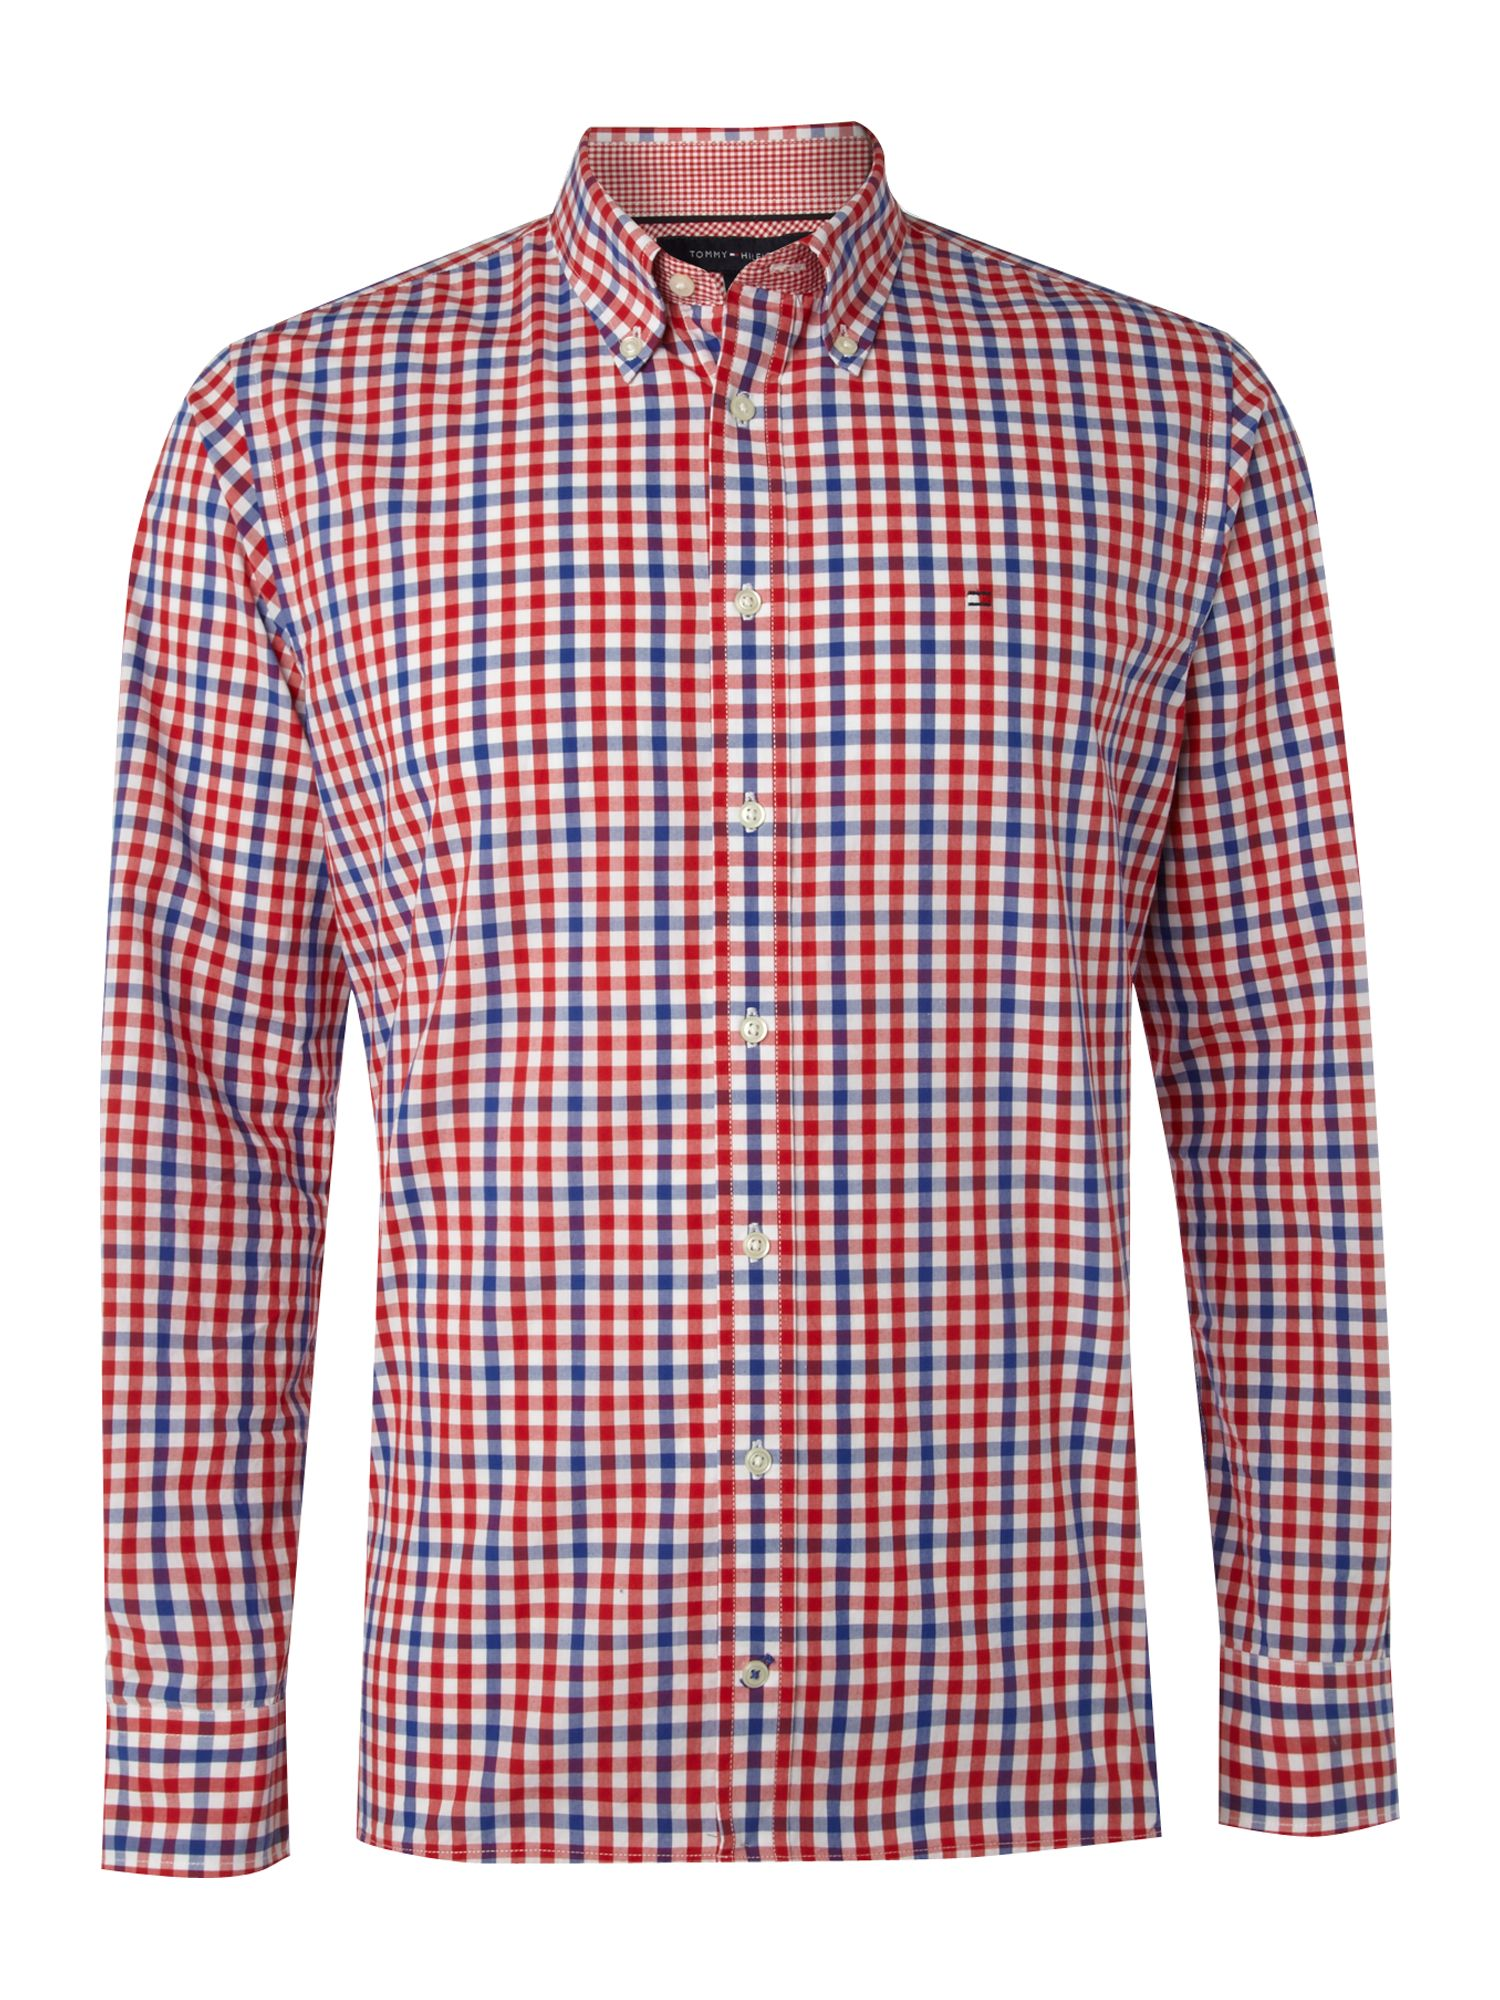 Tommy Hilfiger Check Custom Fit Shirt In Red For Men Lyst